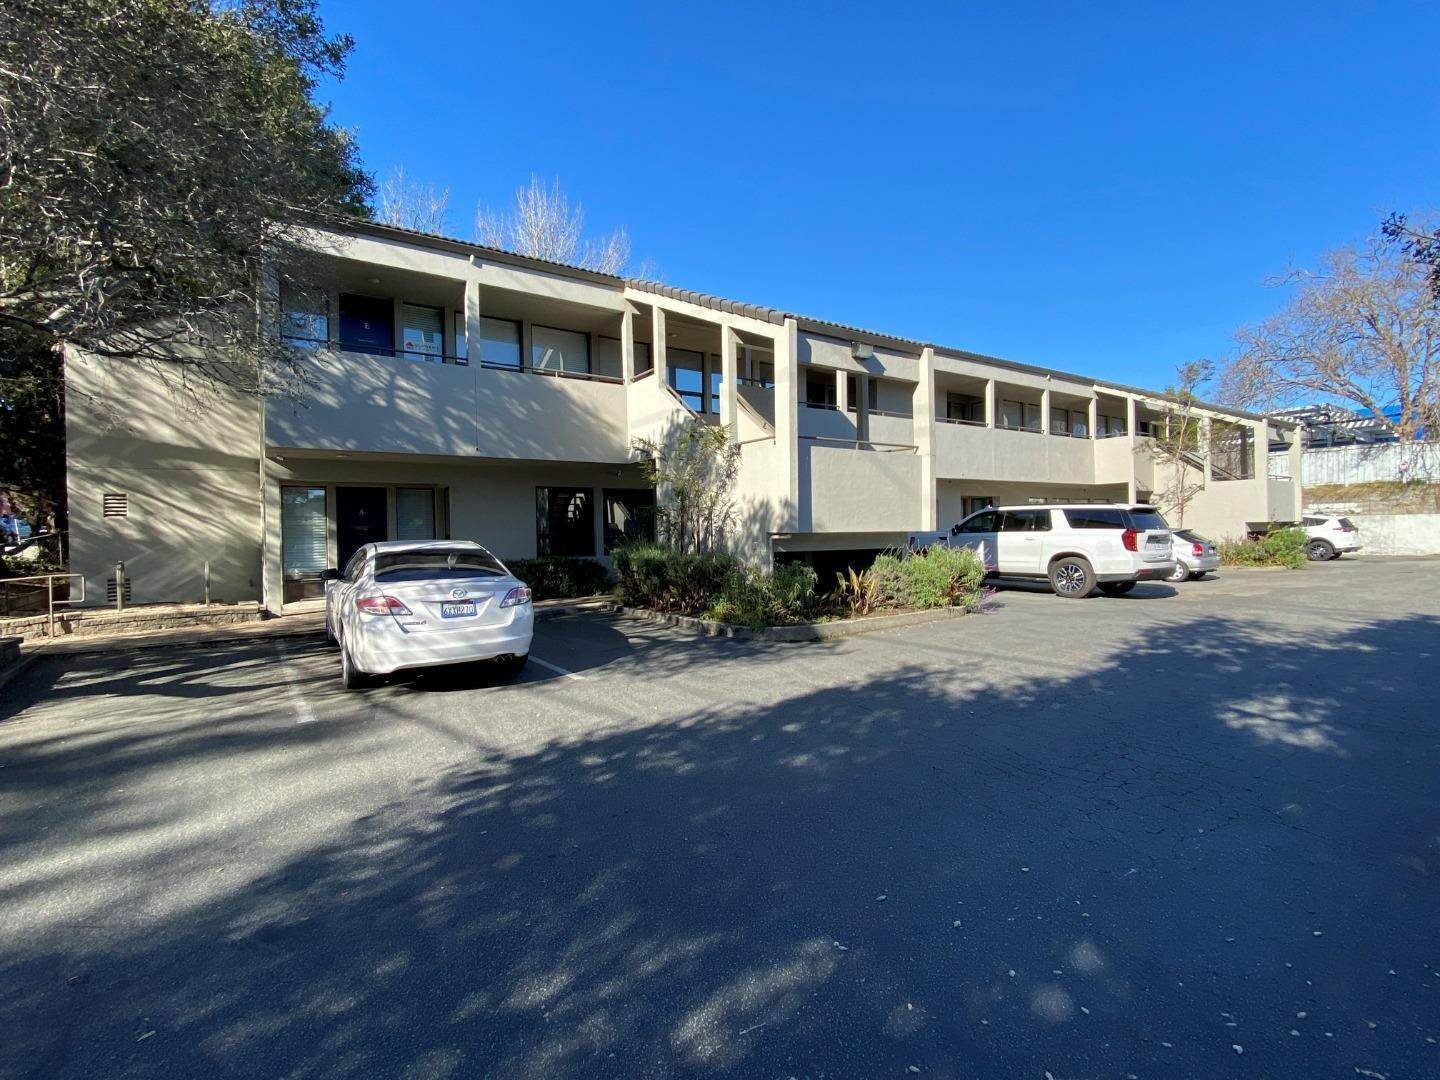 Comm / Ind Lease at 4145 Clares Street Capitola, California 95010 United States